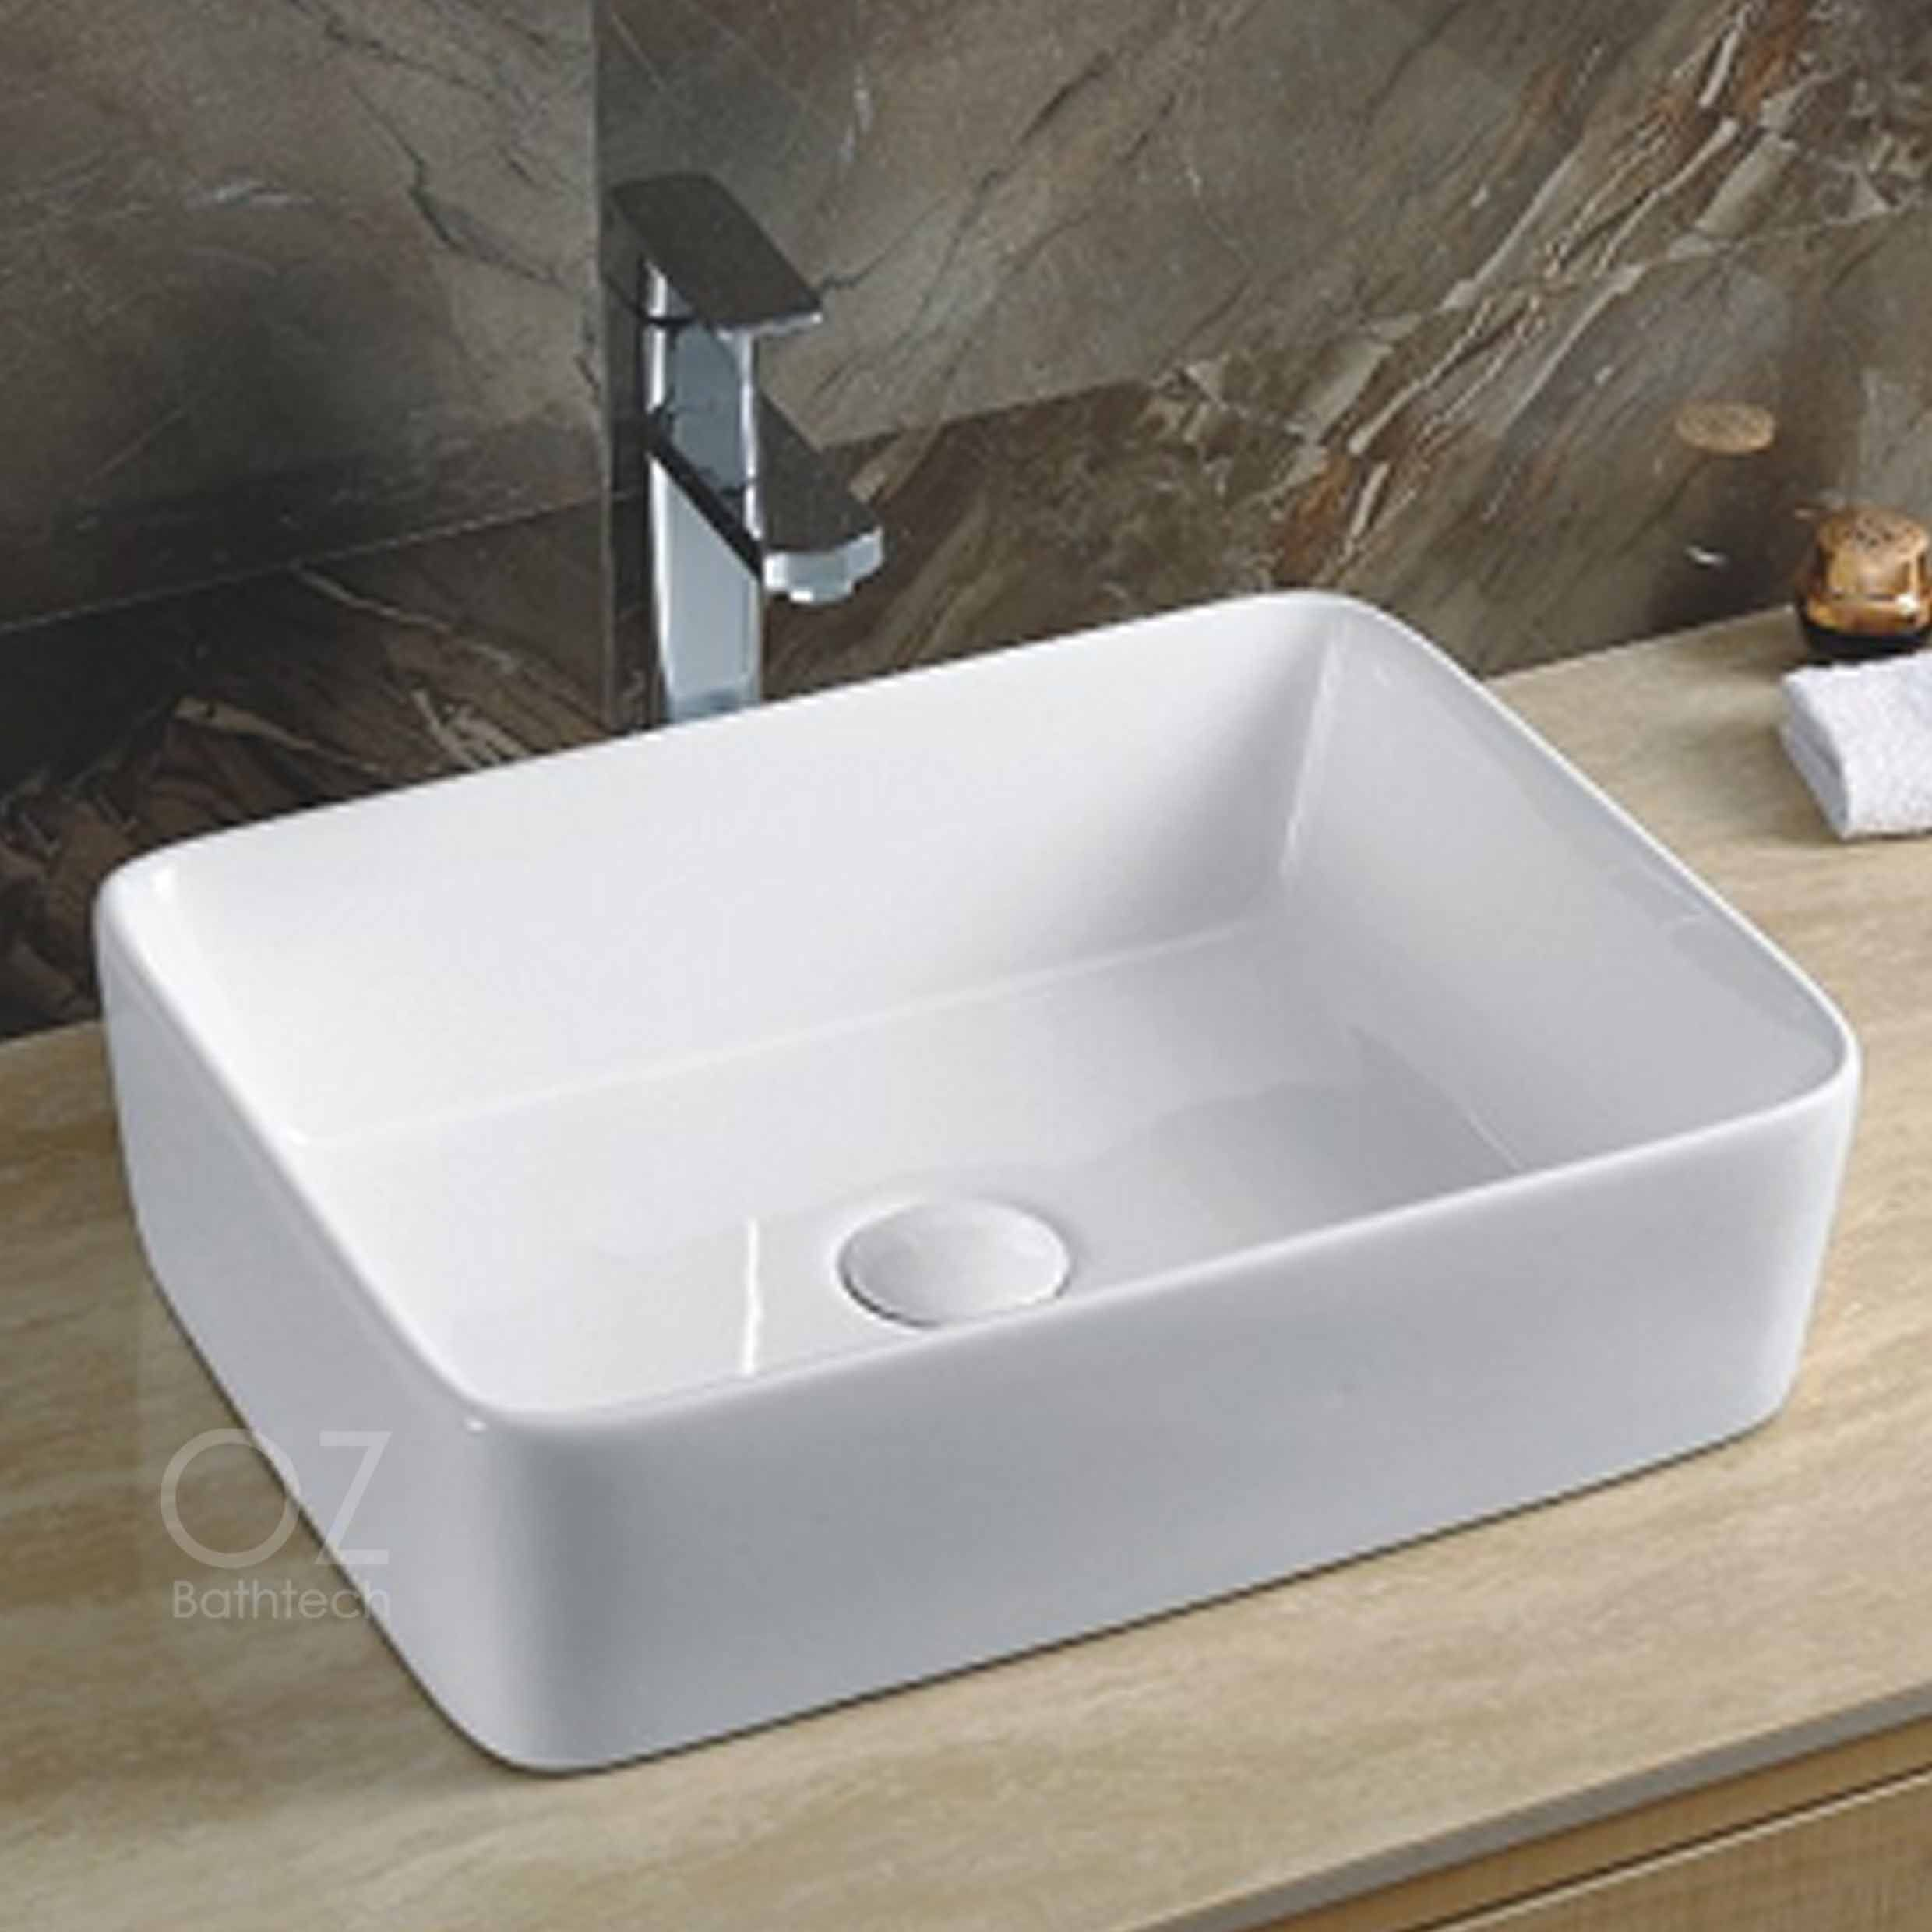 Bathroom Sink Dreamyperson Luxury Above Counter Bathroom Sinks